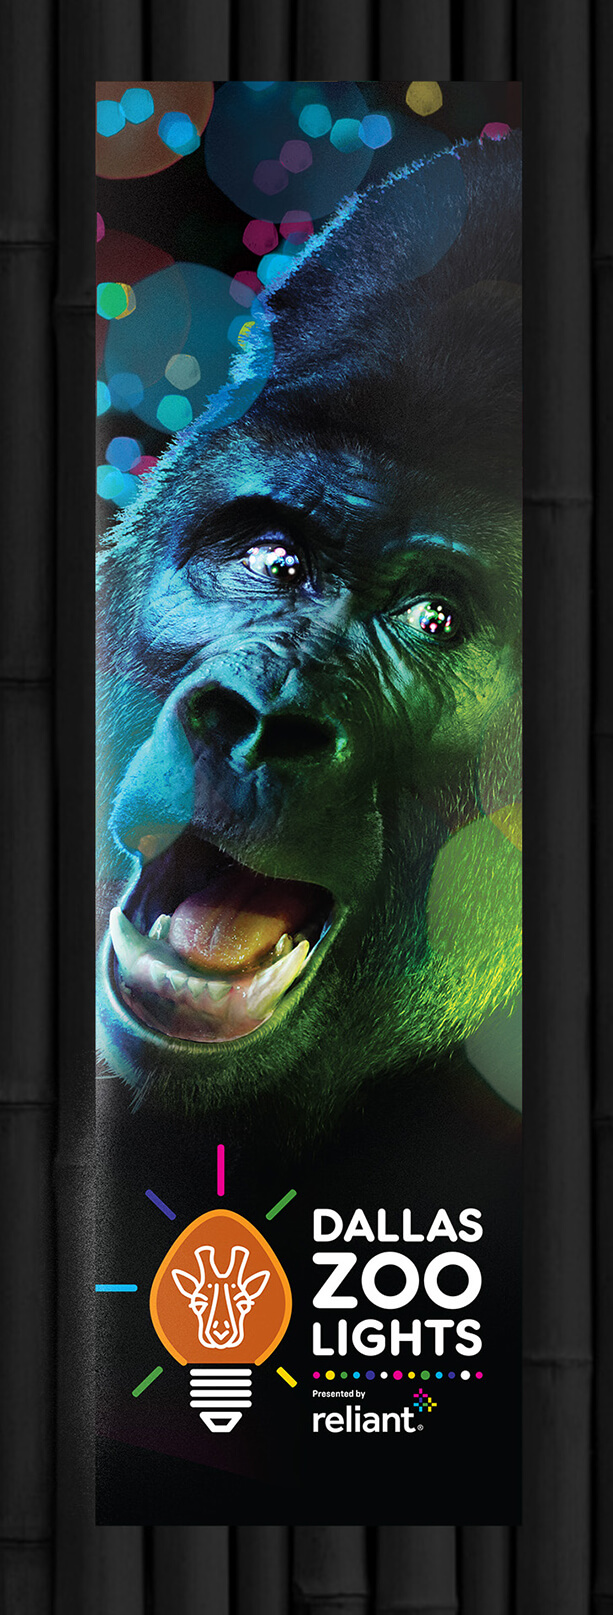 Dallas Zoo - Zoo Lights gorilla banner